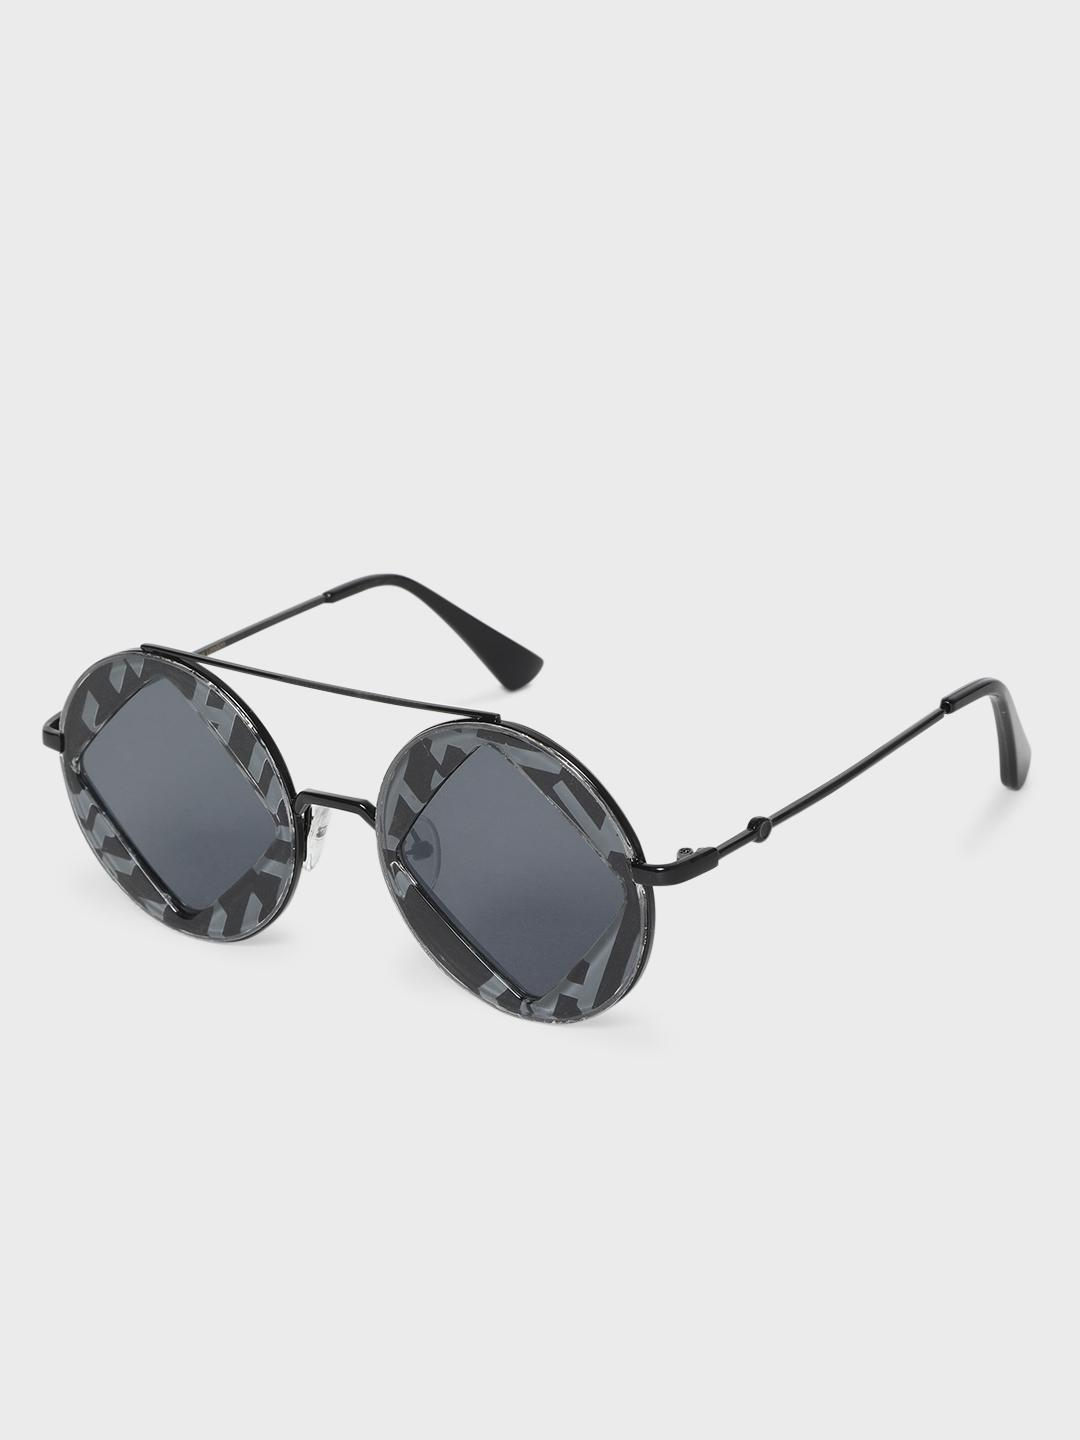 KOOVS Black Diagonal Cut-Out Tinted Round Sunglasses 1